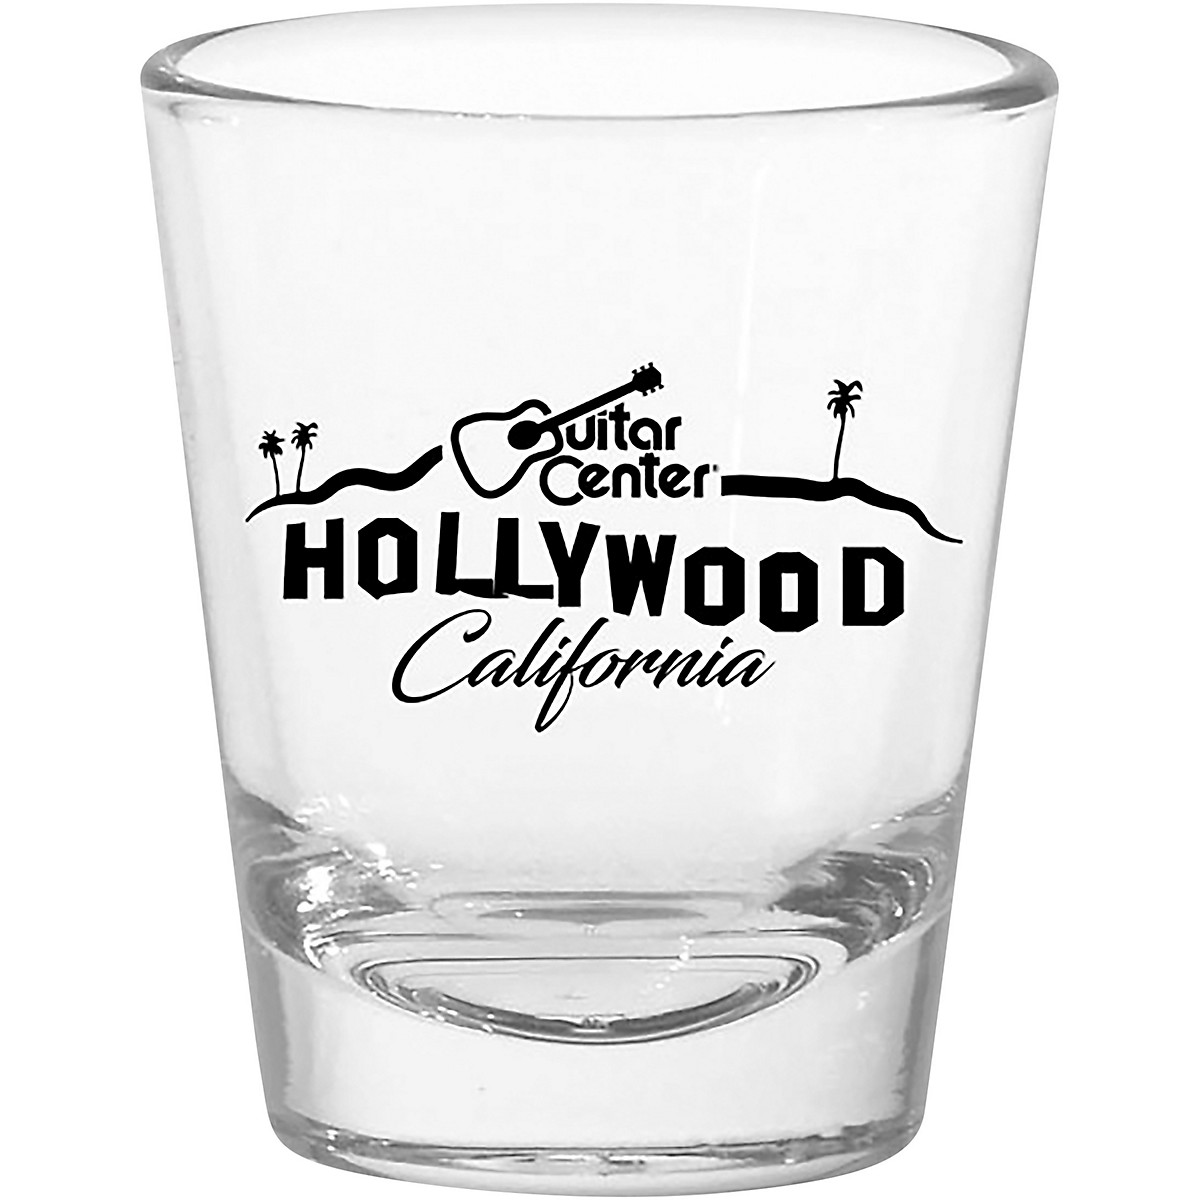 Guitar Center Hollywood 1.75 oz. Tapered Shot Glass